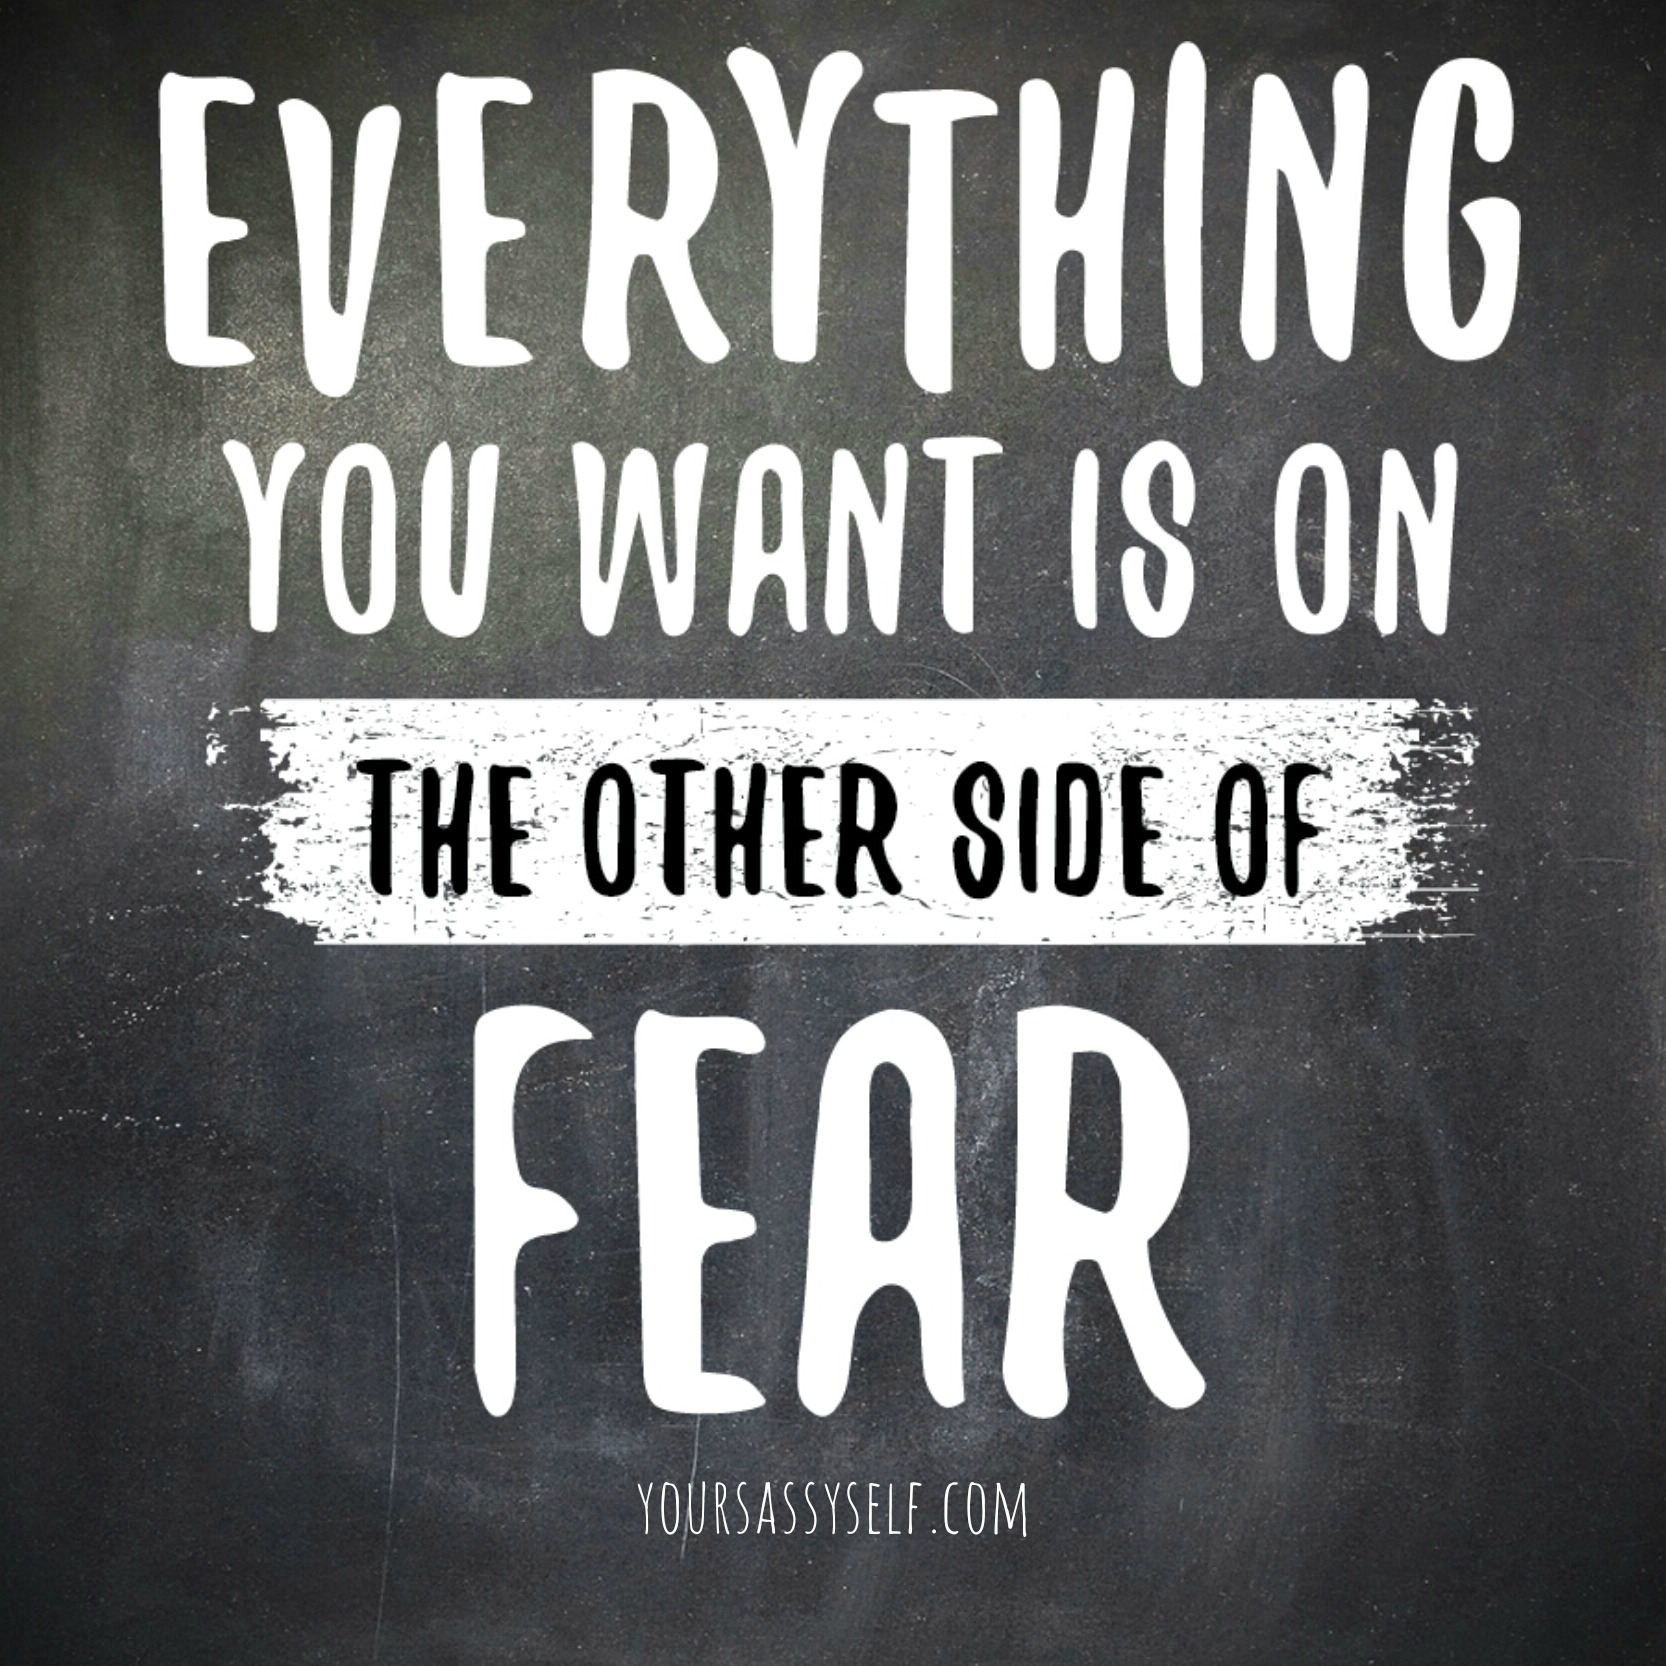 On the other side of fear - yoursassyself.com